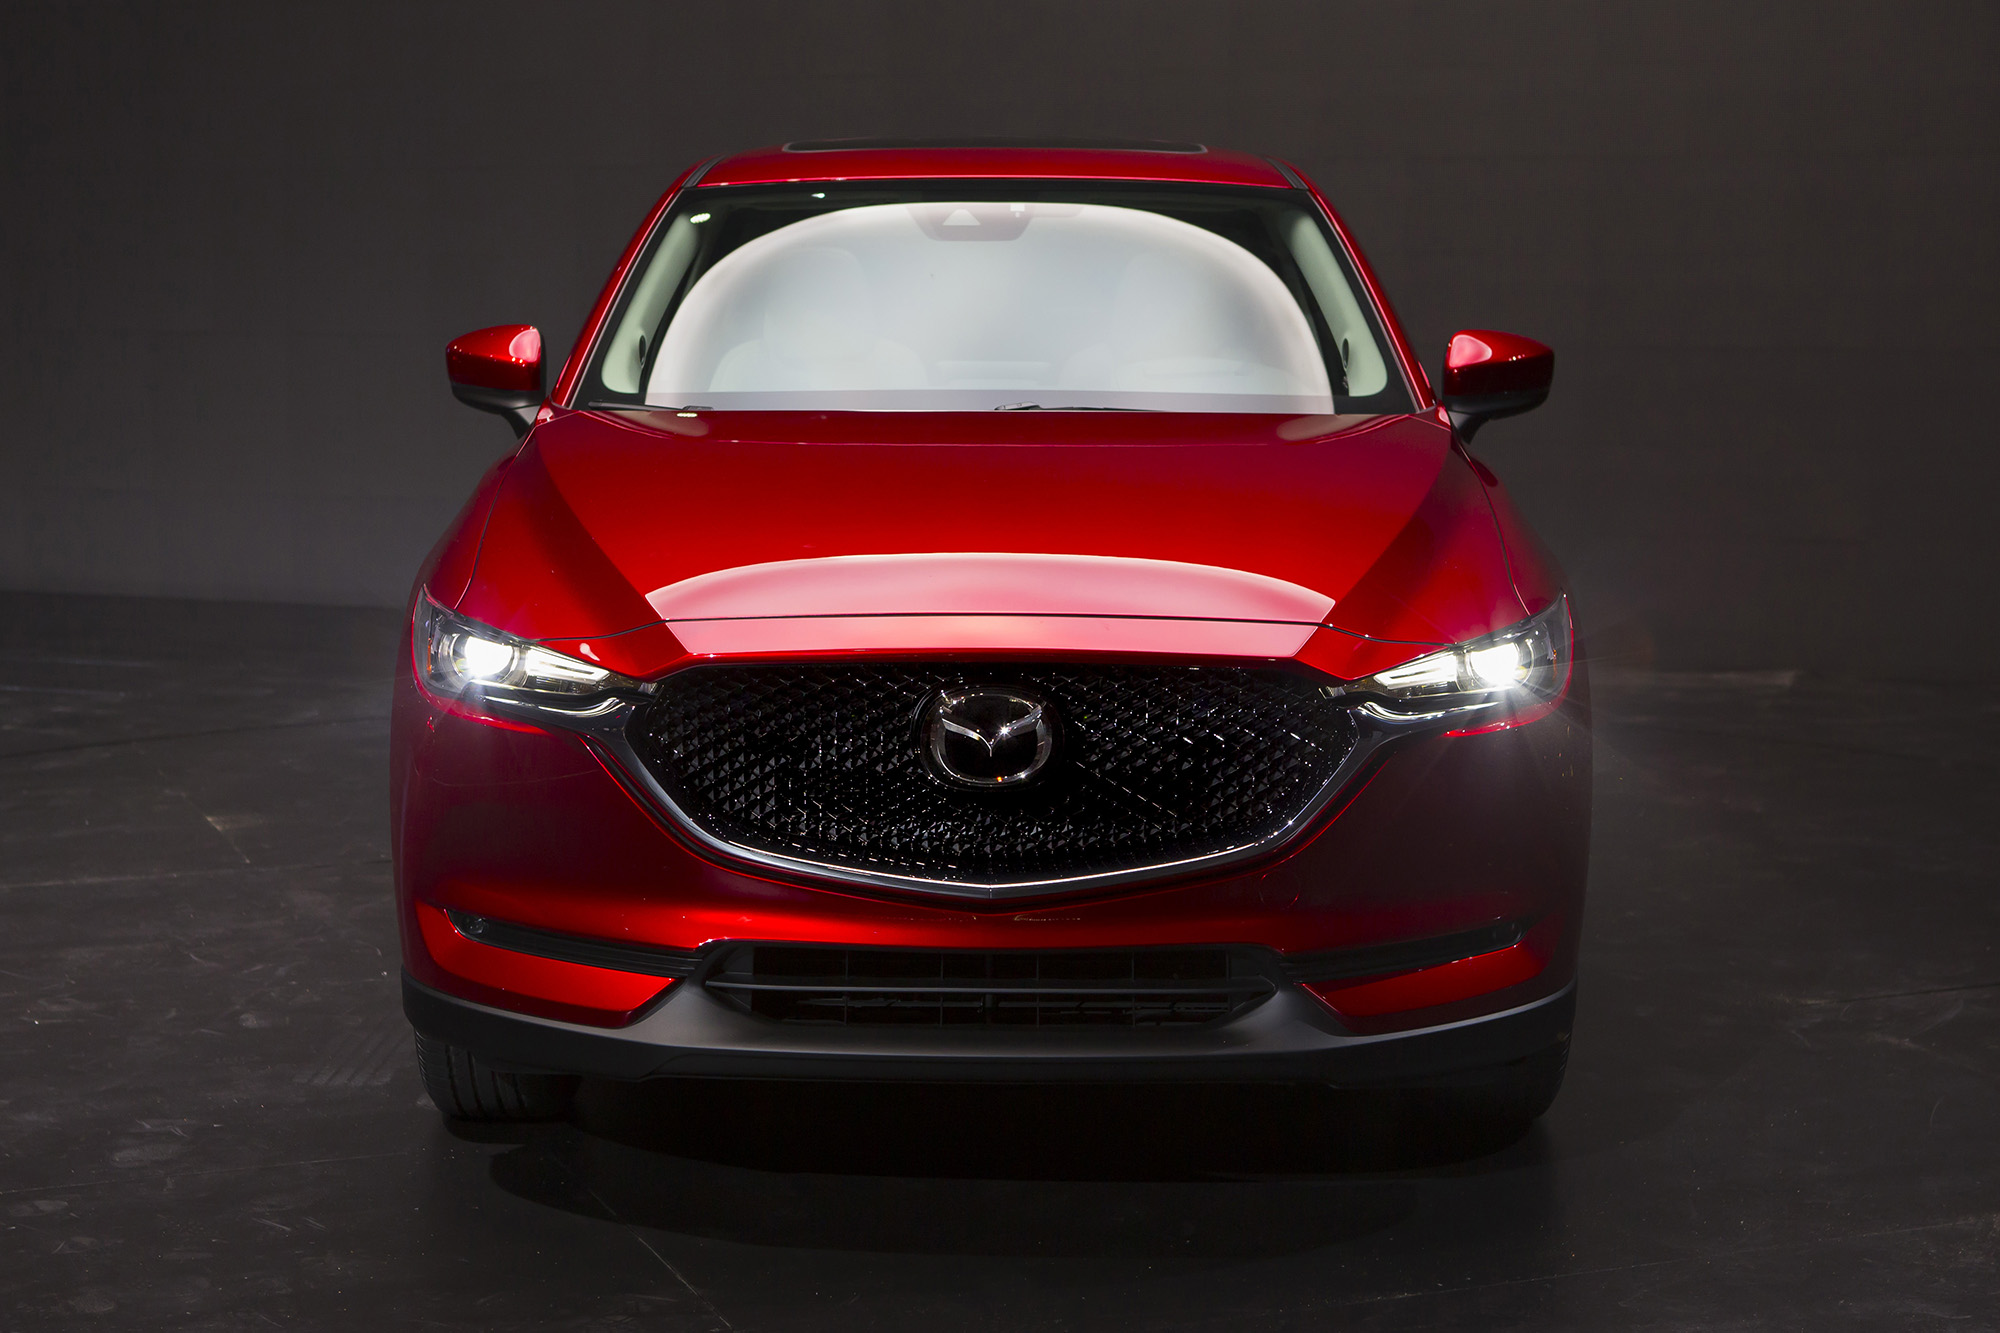 2017 mazda cx 5 unveiled in la photos 1 of 60. Black Bedroom Furniture Sets. Home Design Ideas